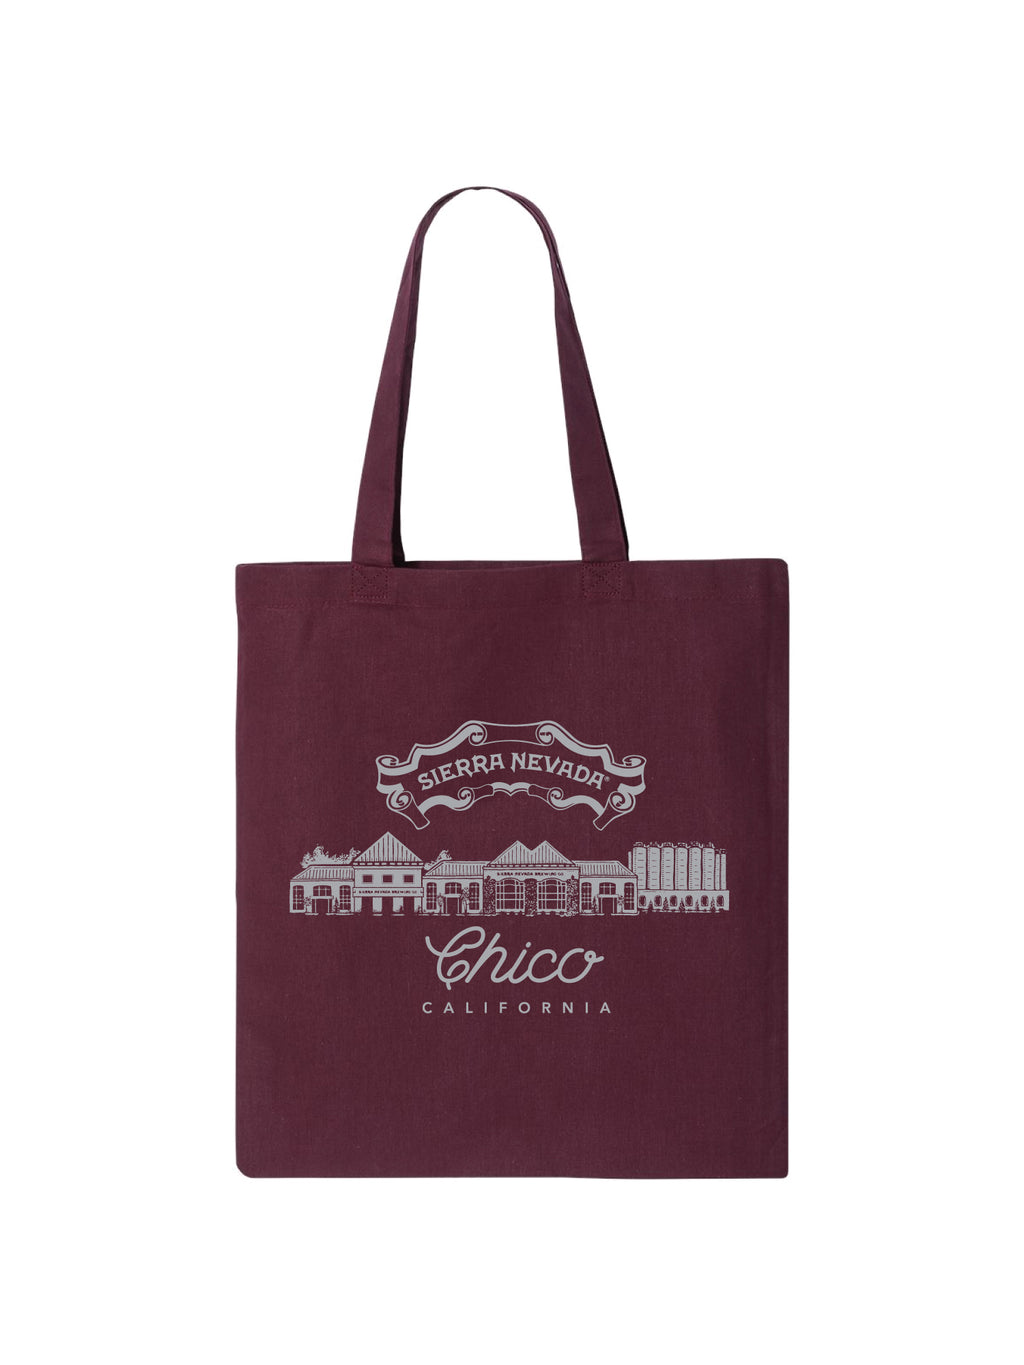 TOTE CHICO BAG- ARMY